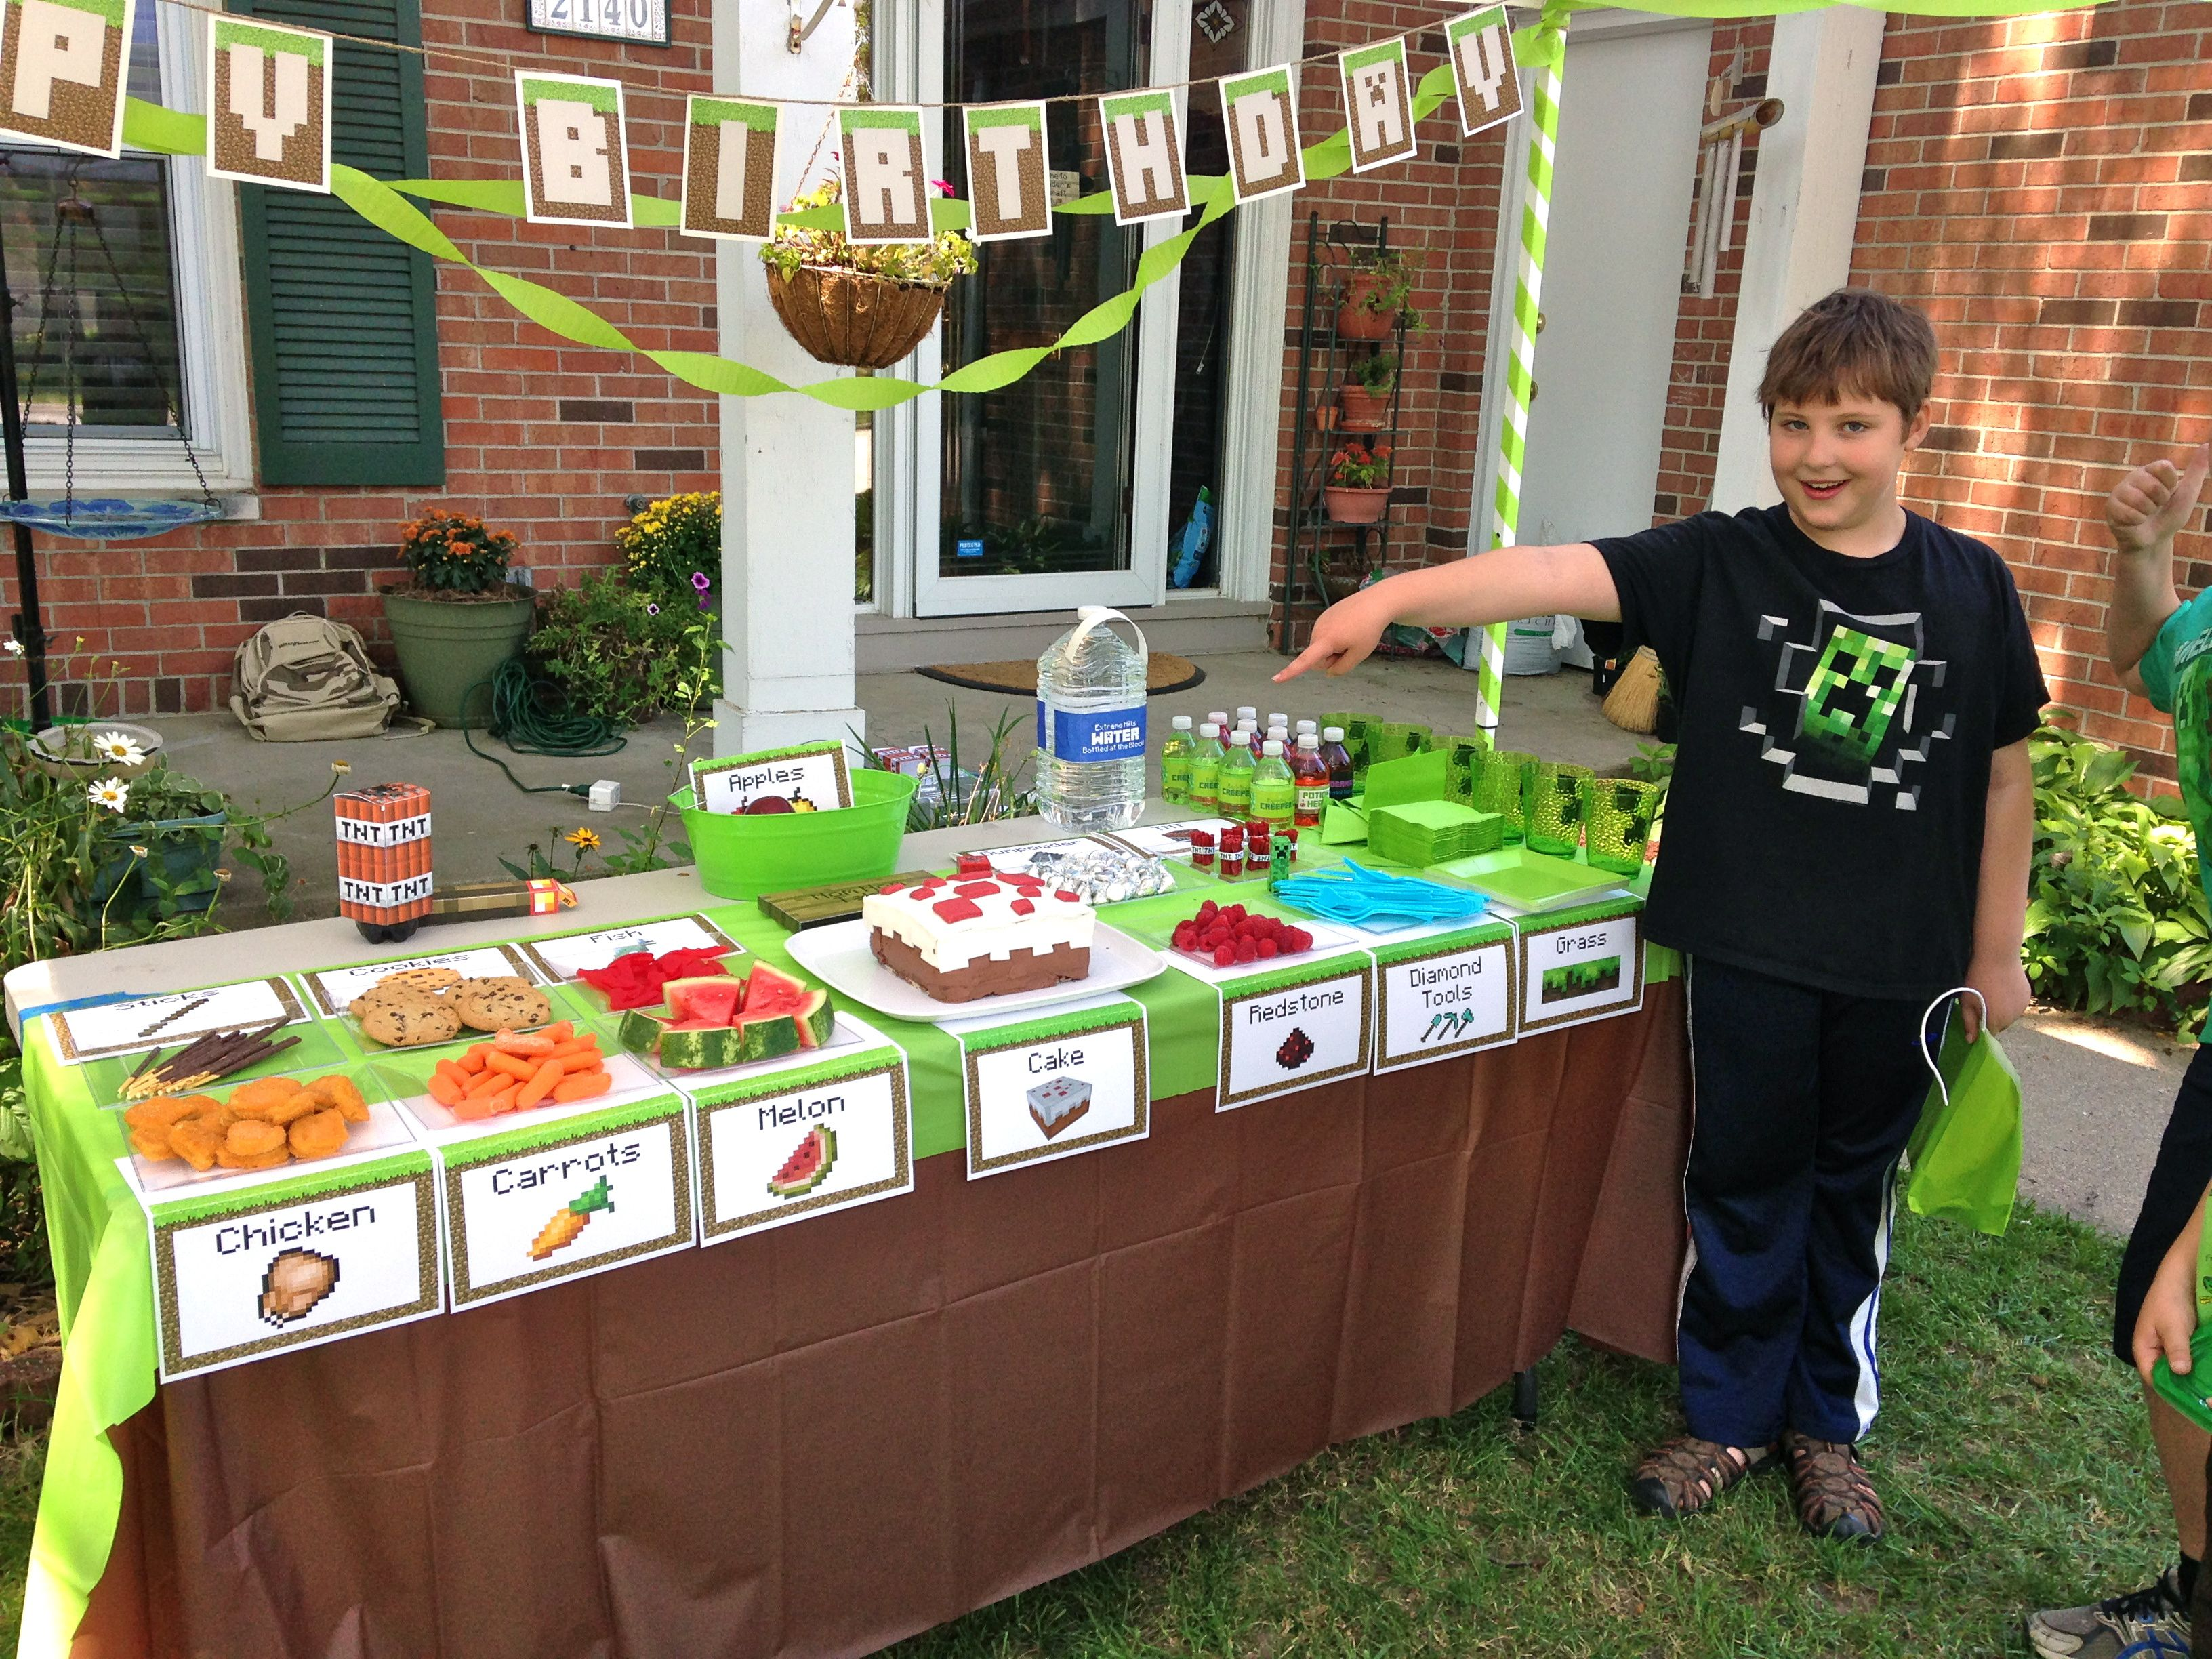 Mine craft birthday ideas - An Epic Minecraft Birthday Party With Games And Printables